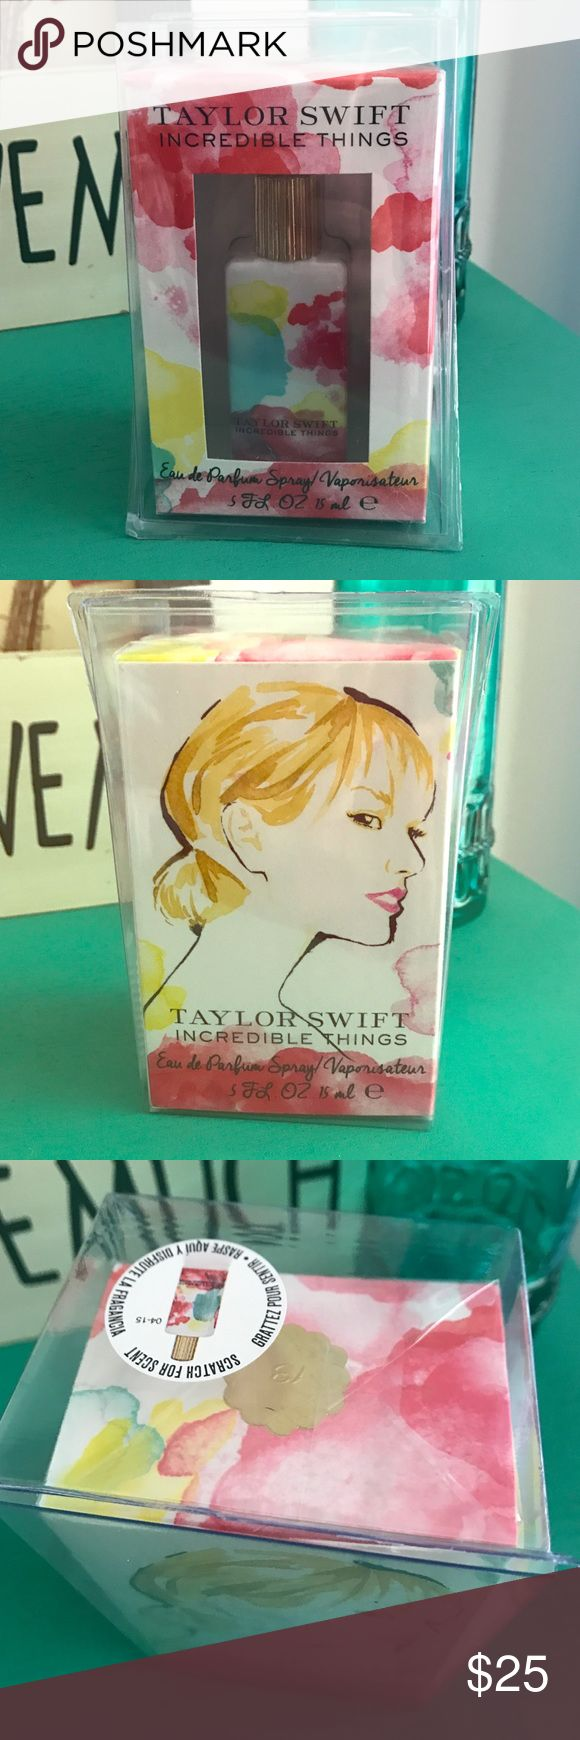 Incredible Things Perfume by Taylor Swift .5 fl oz Brand new in package. Received multiple for Christmas! Taylor Swift Makeup